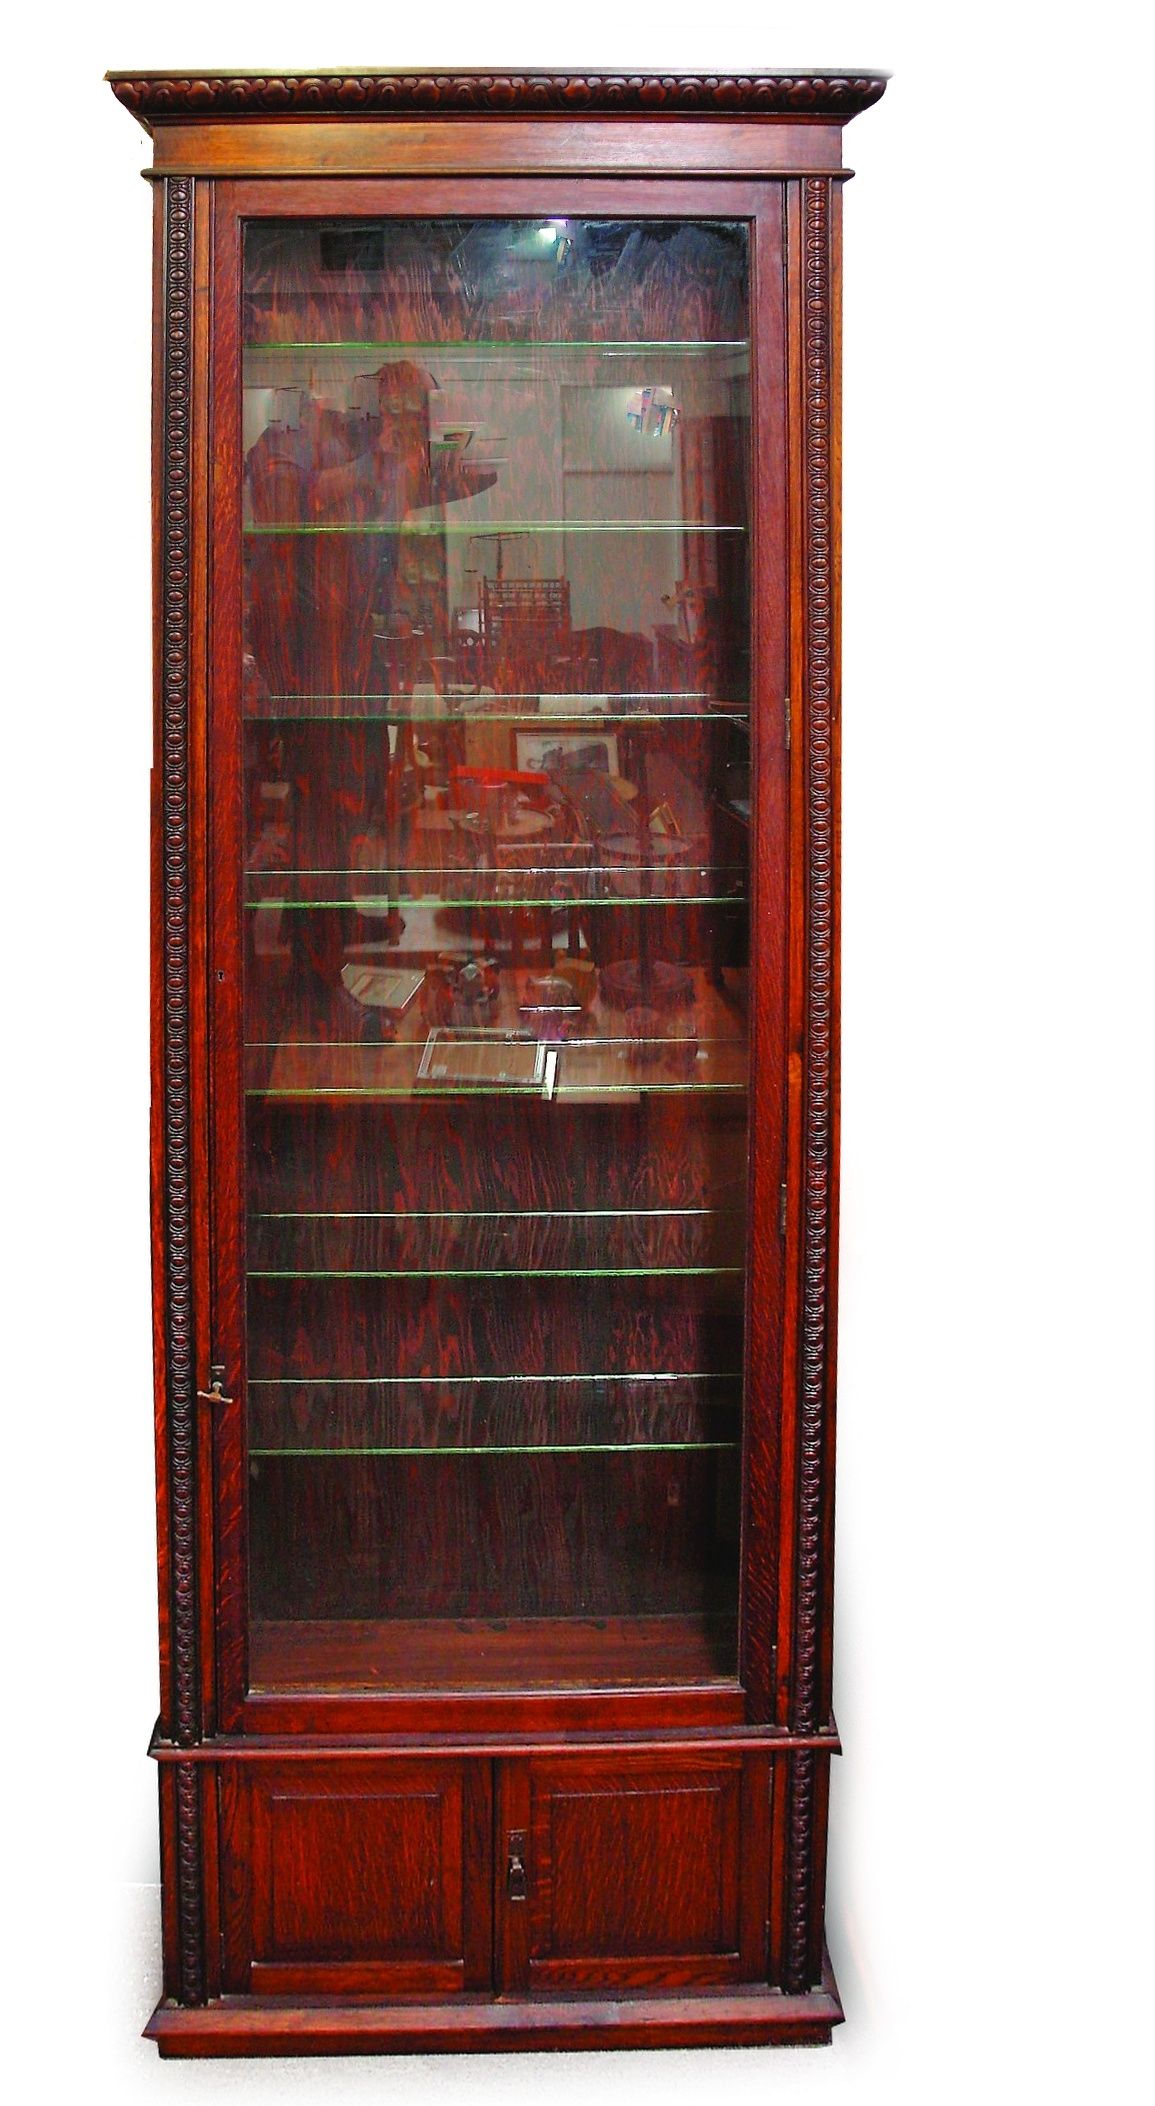 Realisations Public Auctions Furniture Decorative Arts Art Decor Display Cabinet Small Cupboard